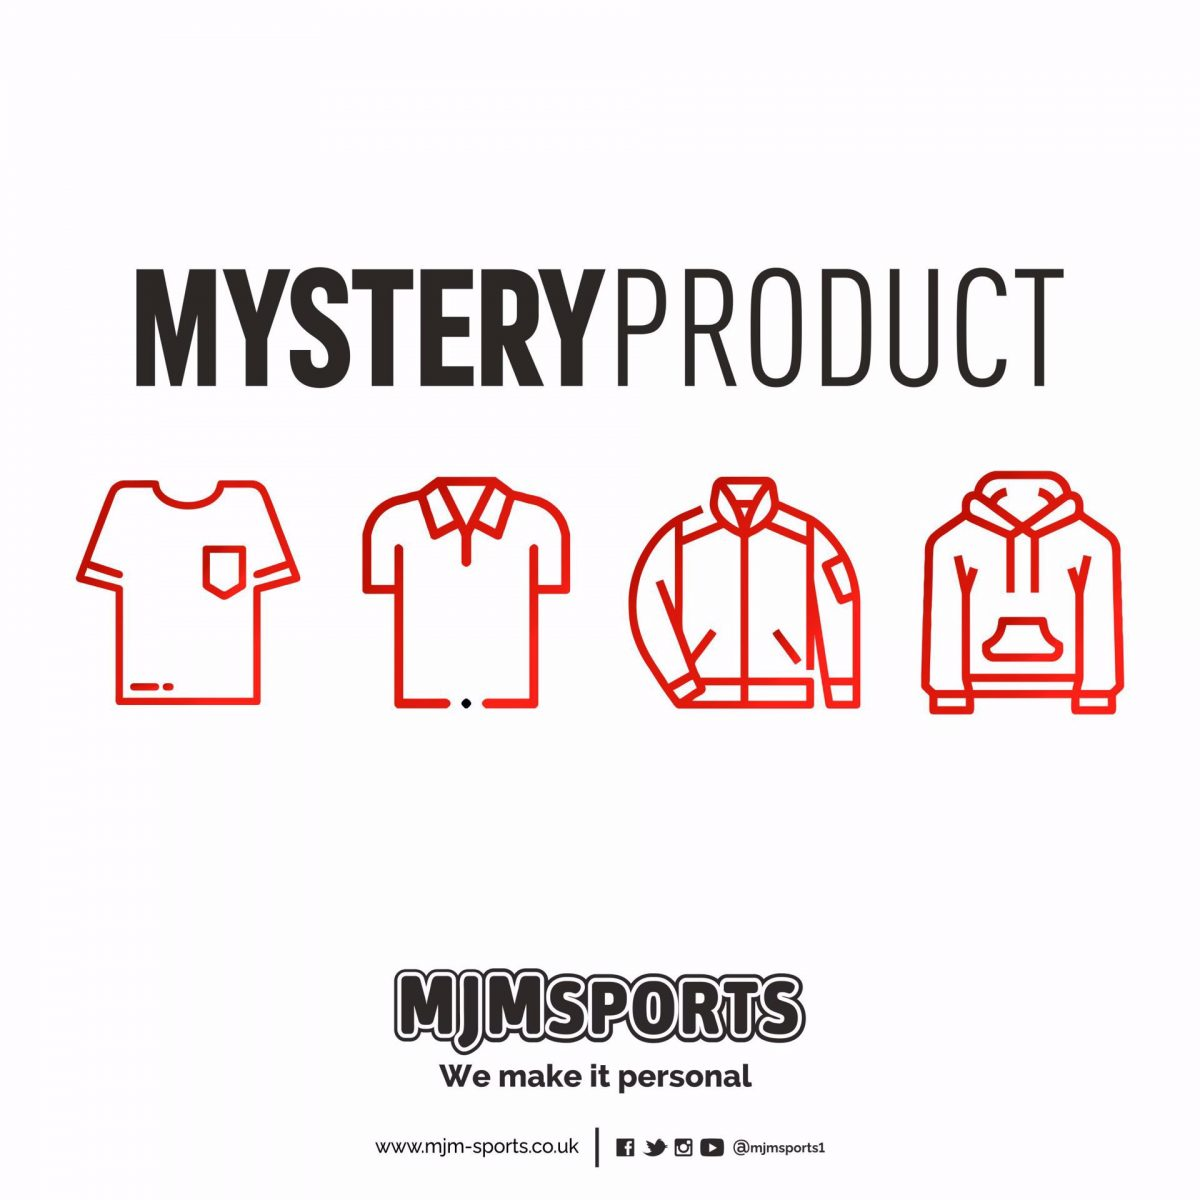 £5 MYSTERY PRODUCT